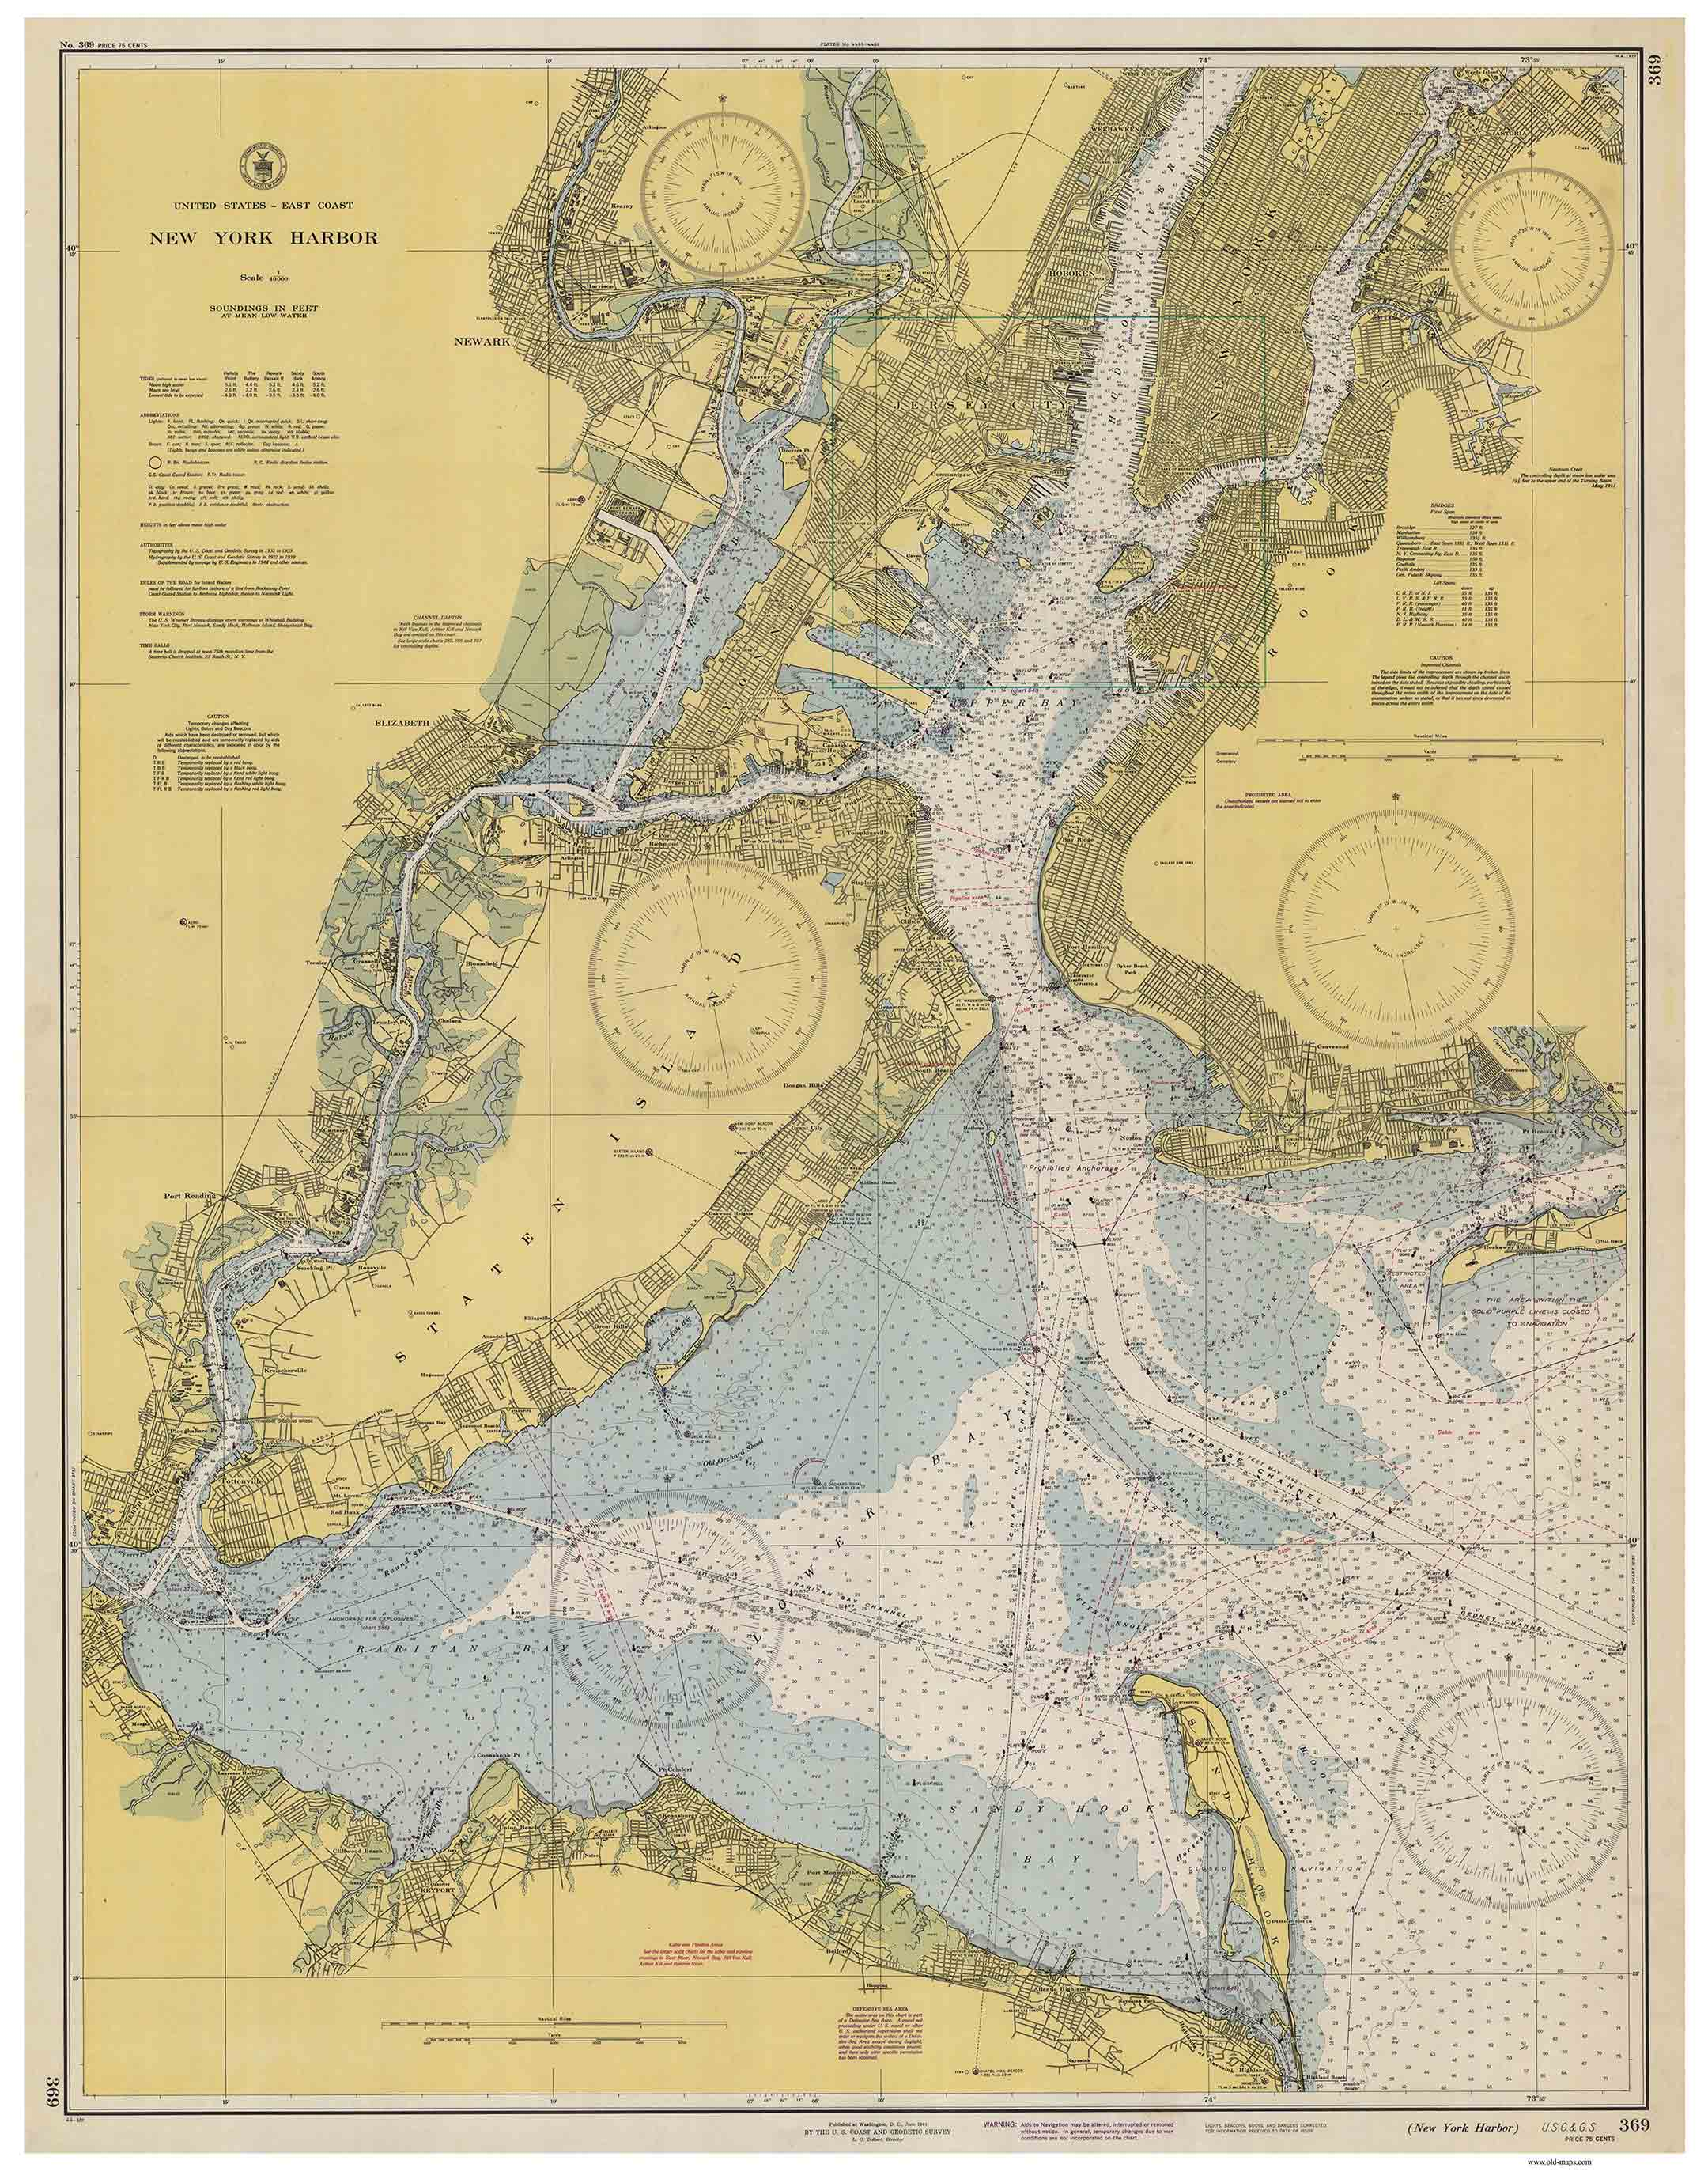 New York Harbor 1944 - Old Map Nautical Chart AC Harbors 369 - New Map New York Harbor on liberty island map, colonial new york state map, clayton new york map, statue of liberty map, new york water taxi map, long island school district map, bell harbor florida map, port chester new york map, mississippi river map, east new york map, east coast map, hempstead new york map, new york university map, hudson valley new york map, york harbor me map, erie canal map, new york lighthouses map, rivers in new york map, new york bay map, new york finger lakes map,